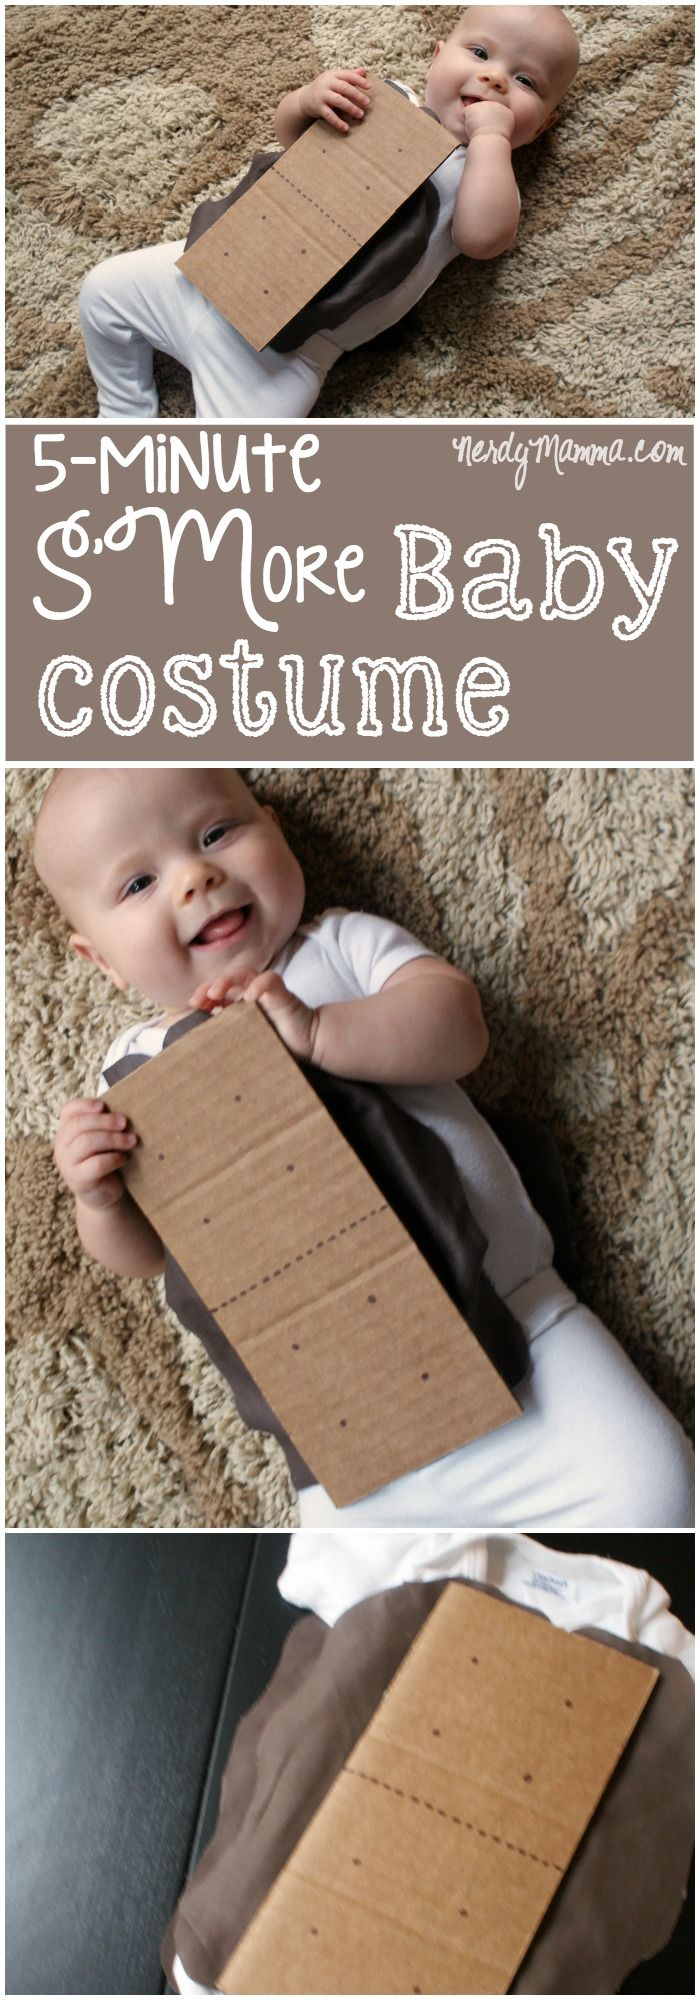 127 best costumes for baby images on pinterest baby costumes this funny diy smore baby costume is so cute and so easy solutioingenieria Choice Image